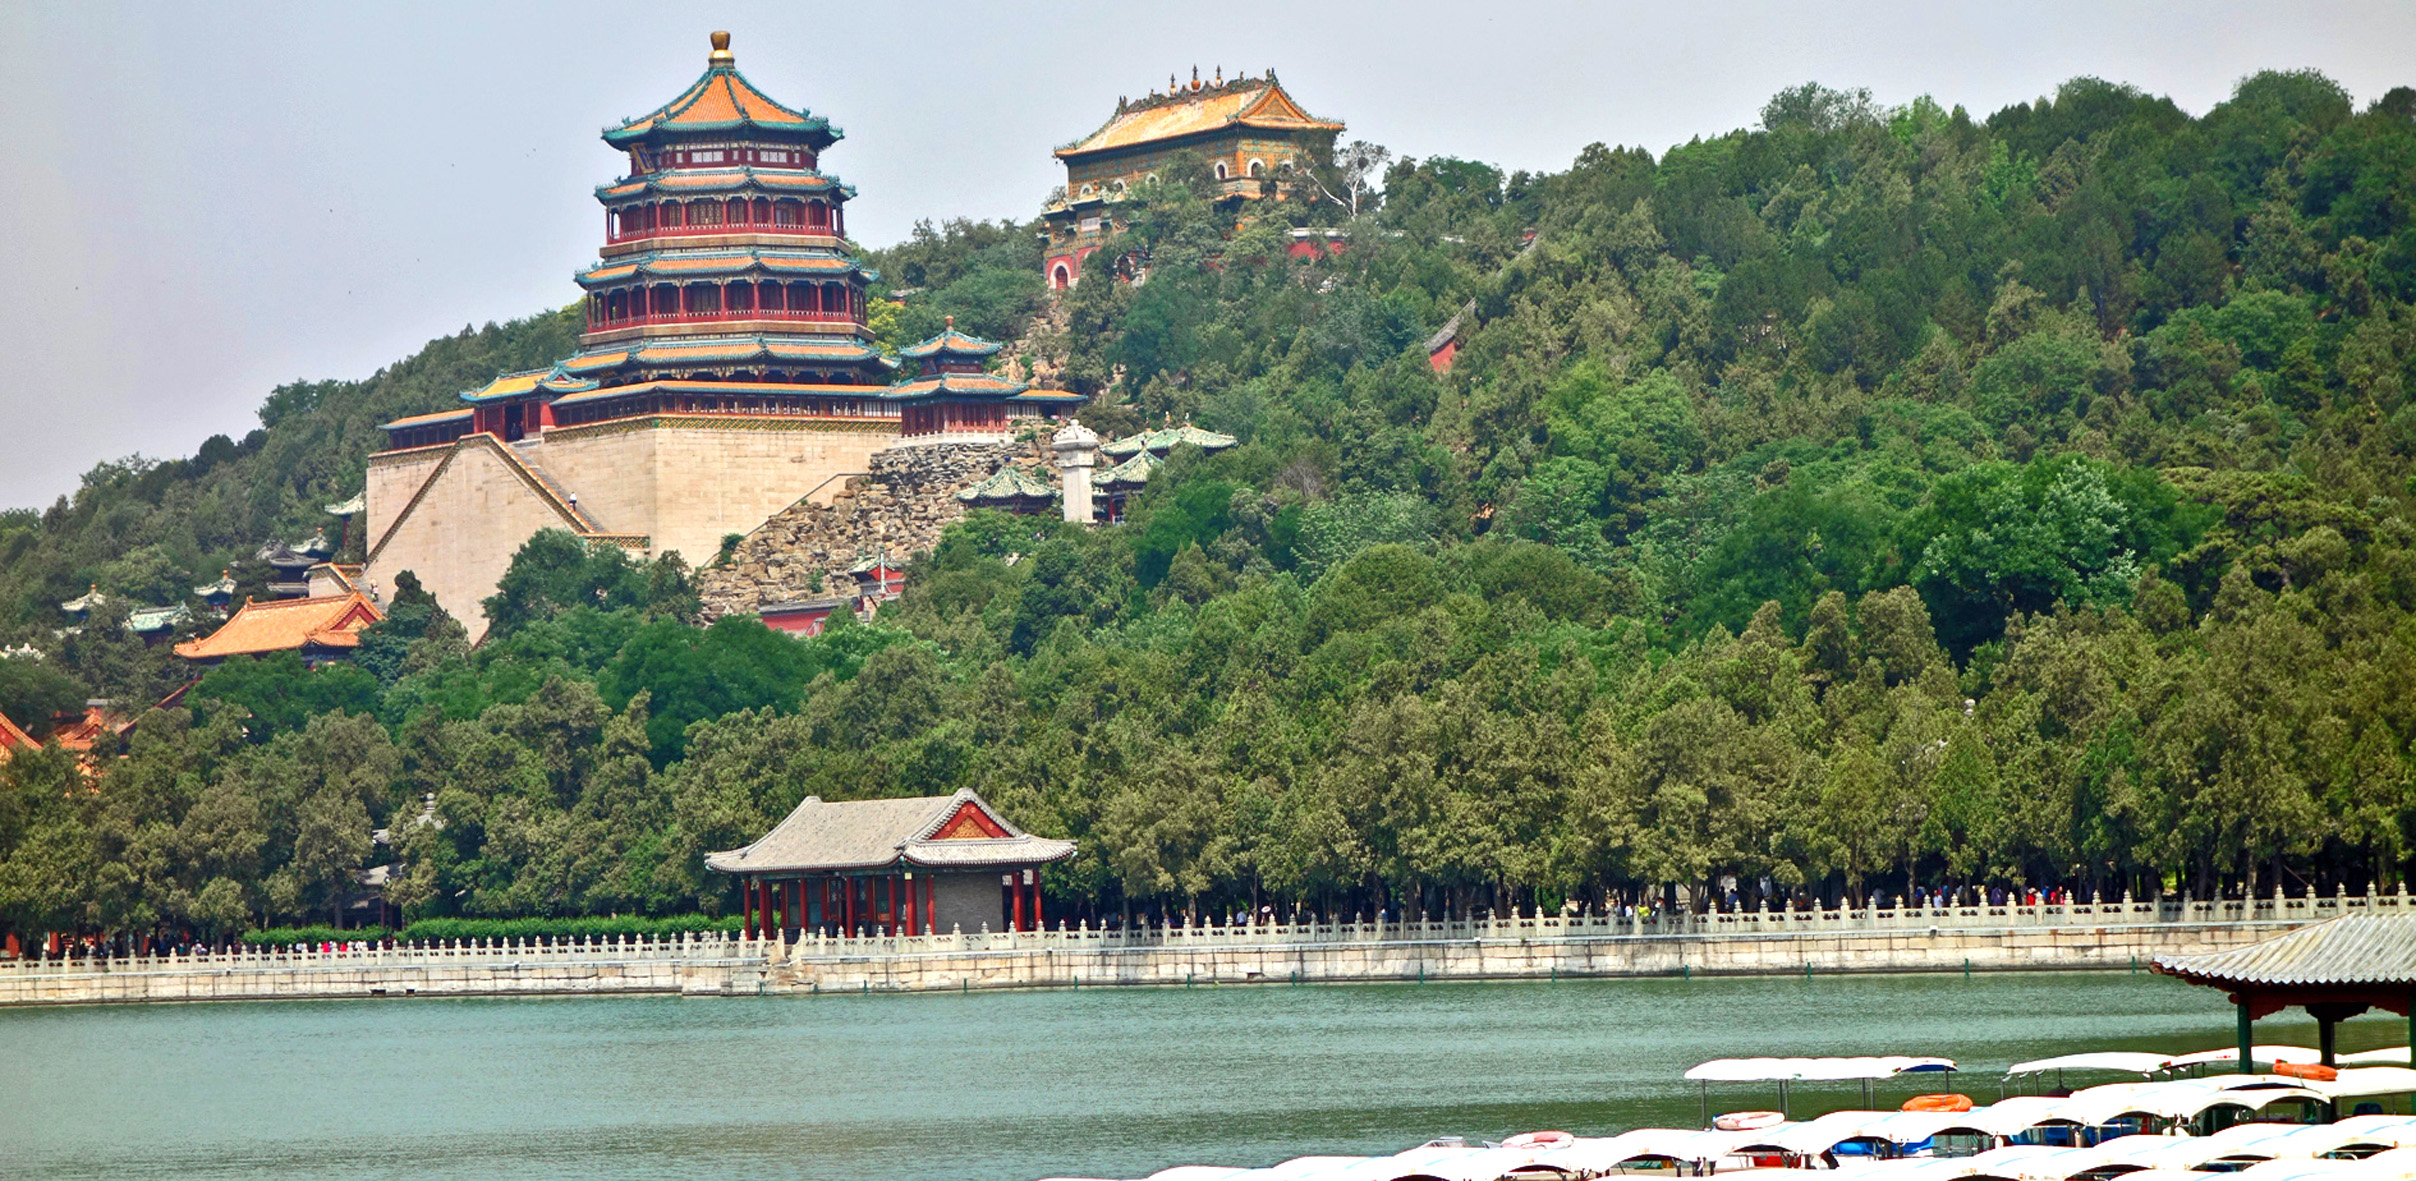 Longevity Hill 0584_2 cropped header